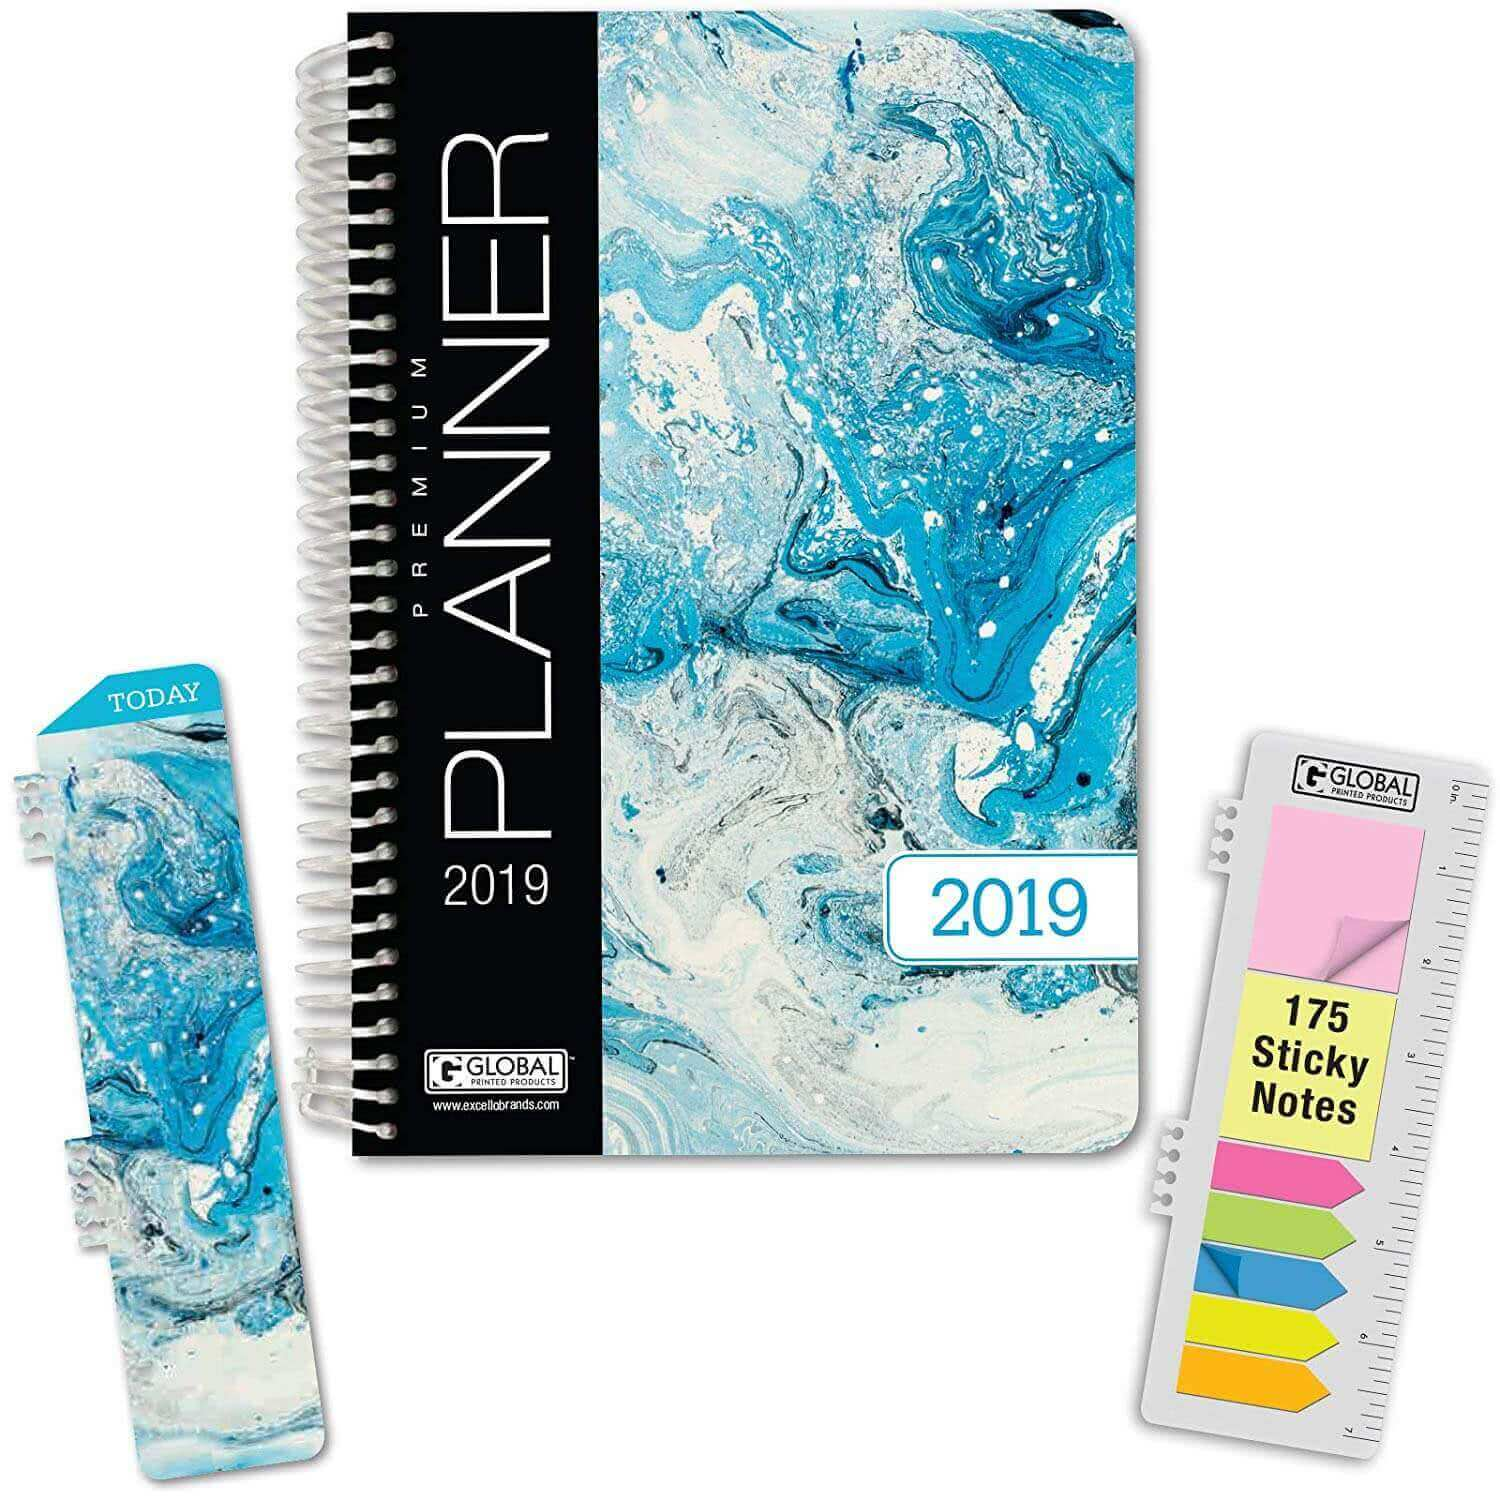 A Global Printed Products hardcover 2019 academic planner with sticky notes and bookmark. Click to view its Amazon page.